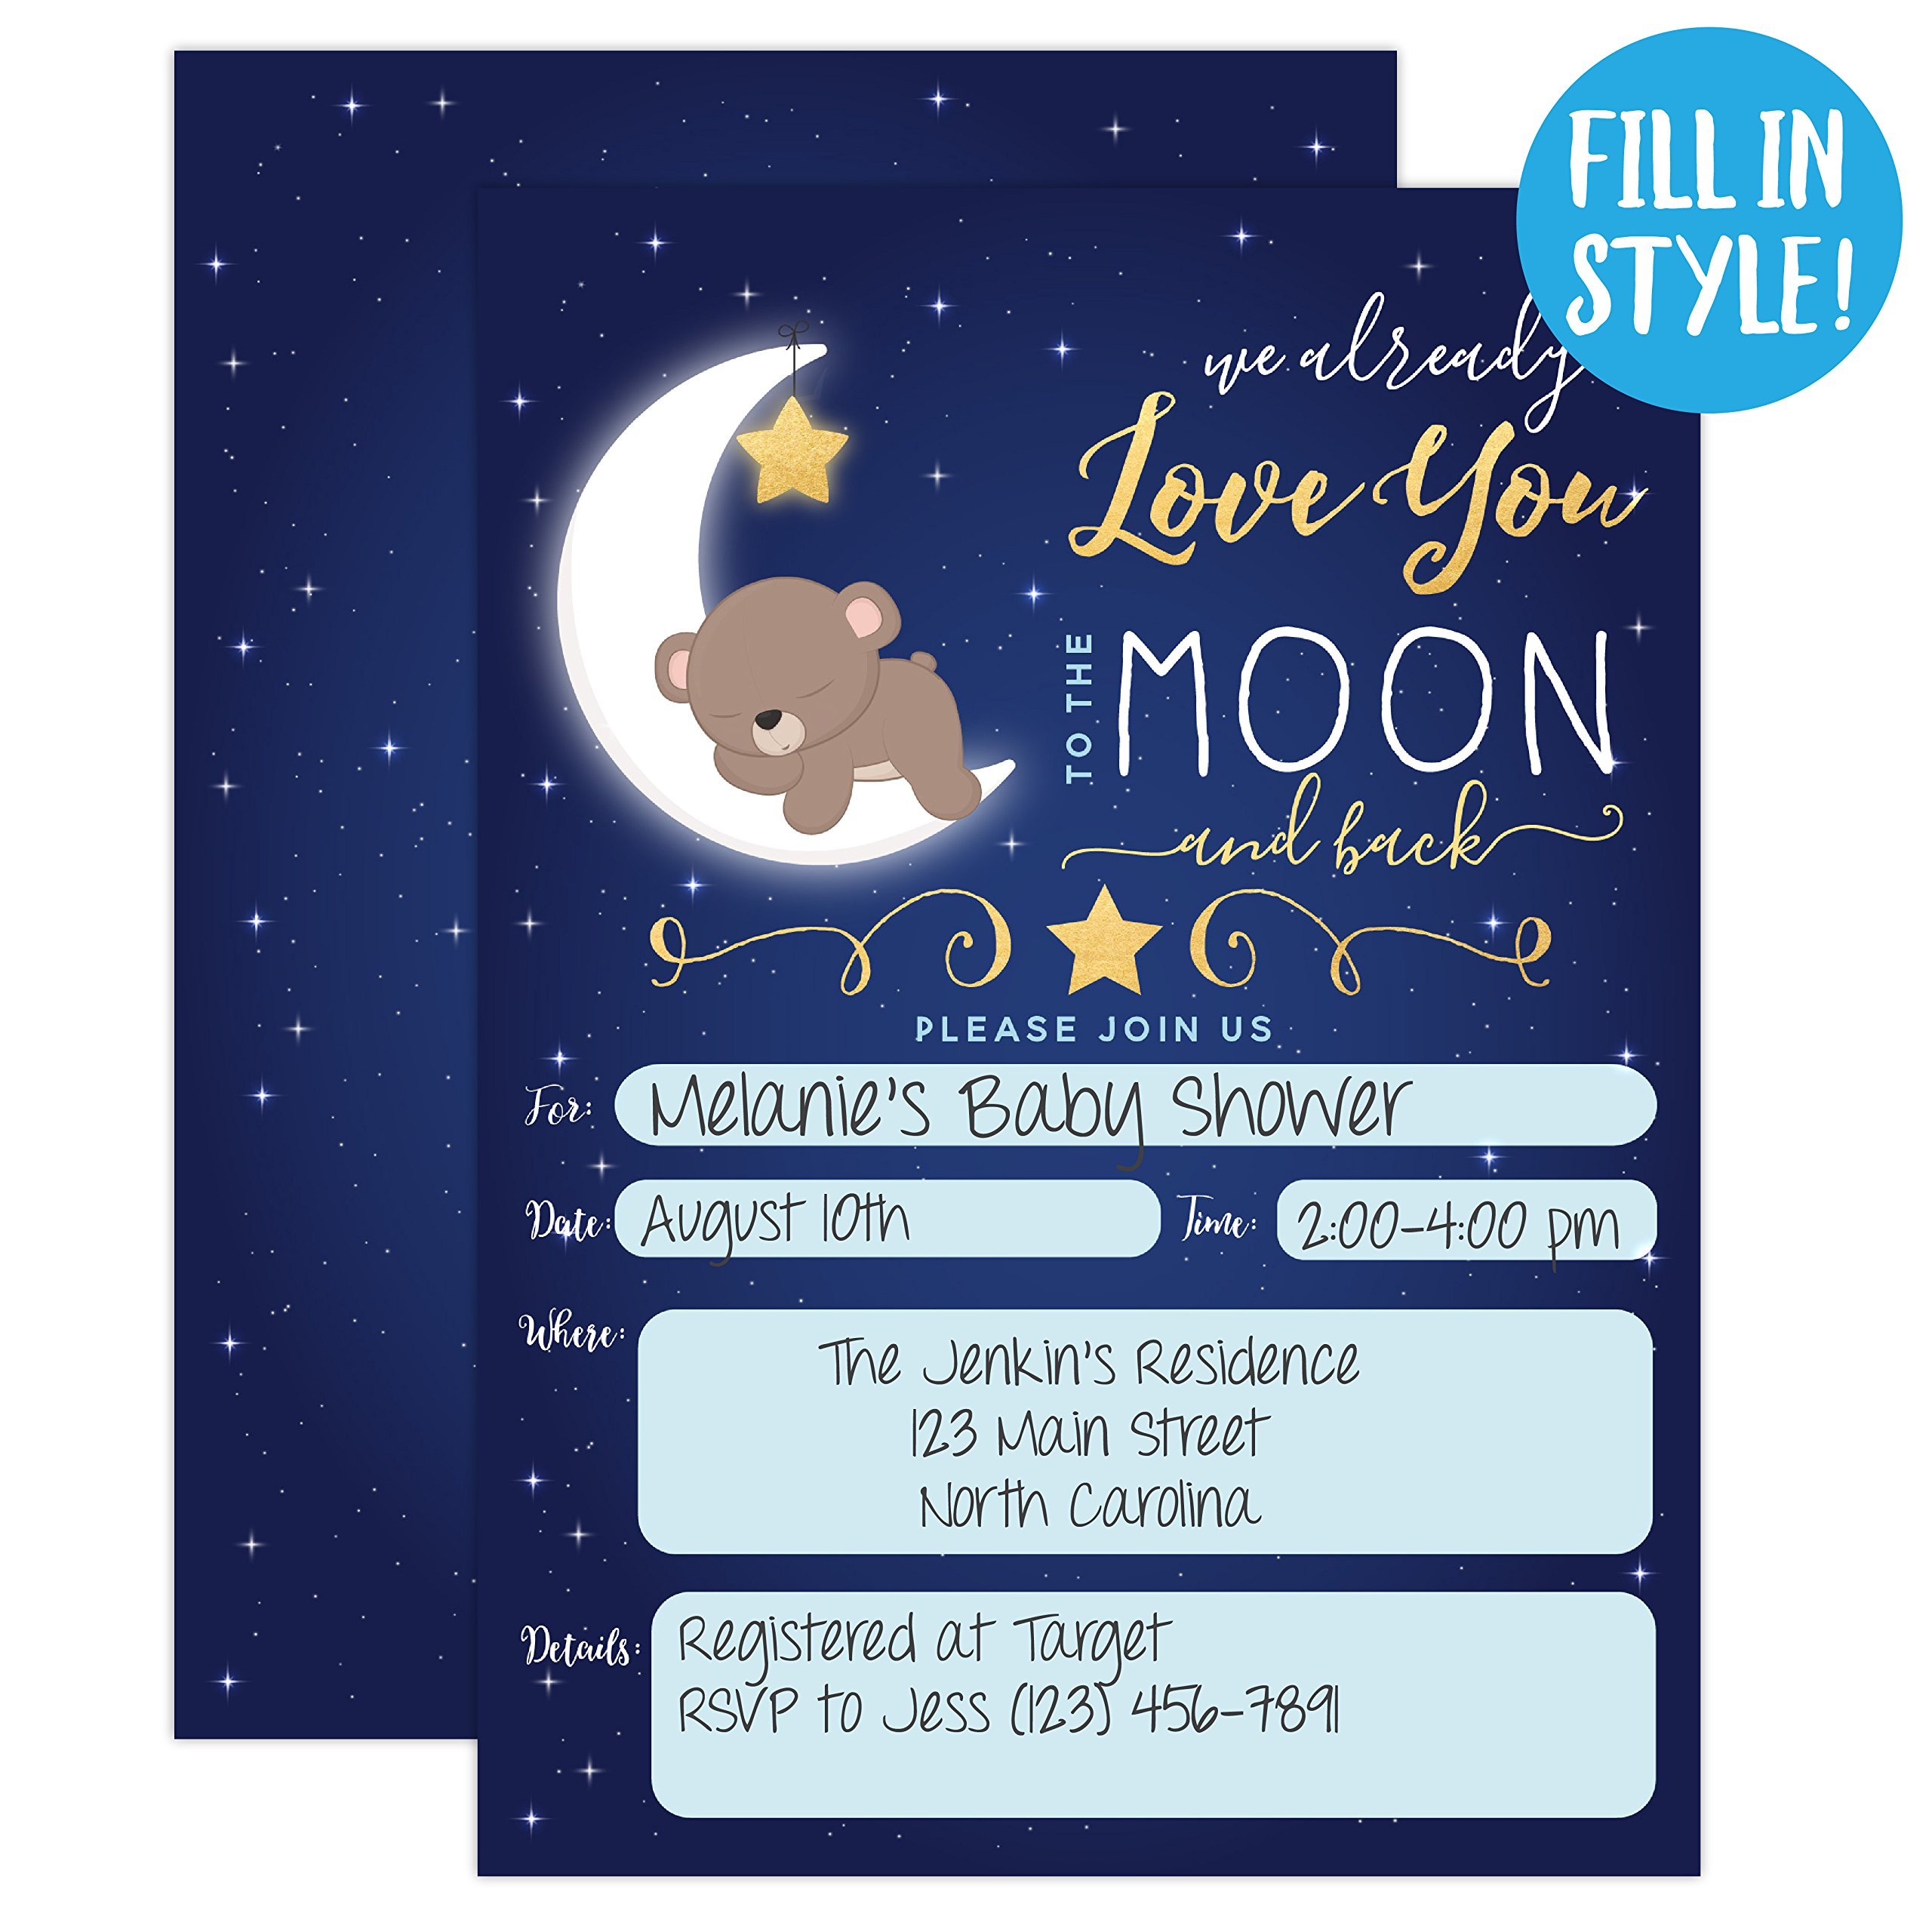 Boy Baby Shower Invitation, Love You To the Moon and back Baby Shower Invitation, Bear Baby Shower invite, Twinkle Twinkle Little Sar, 20 Fill in Invitations and Envelopes by Your Main Event Prints (Image #2)